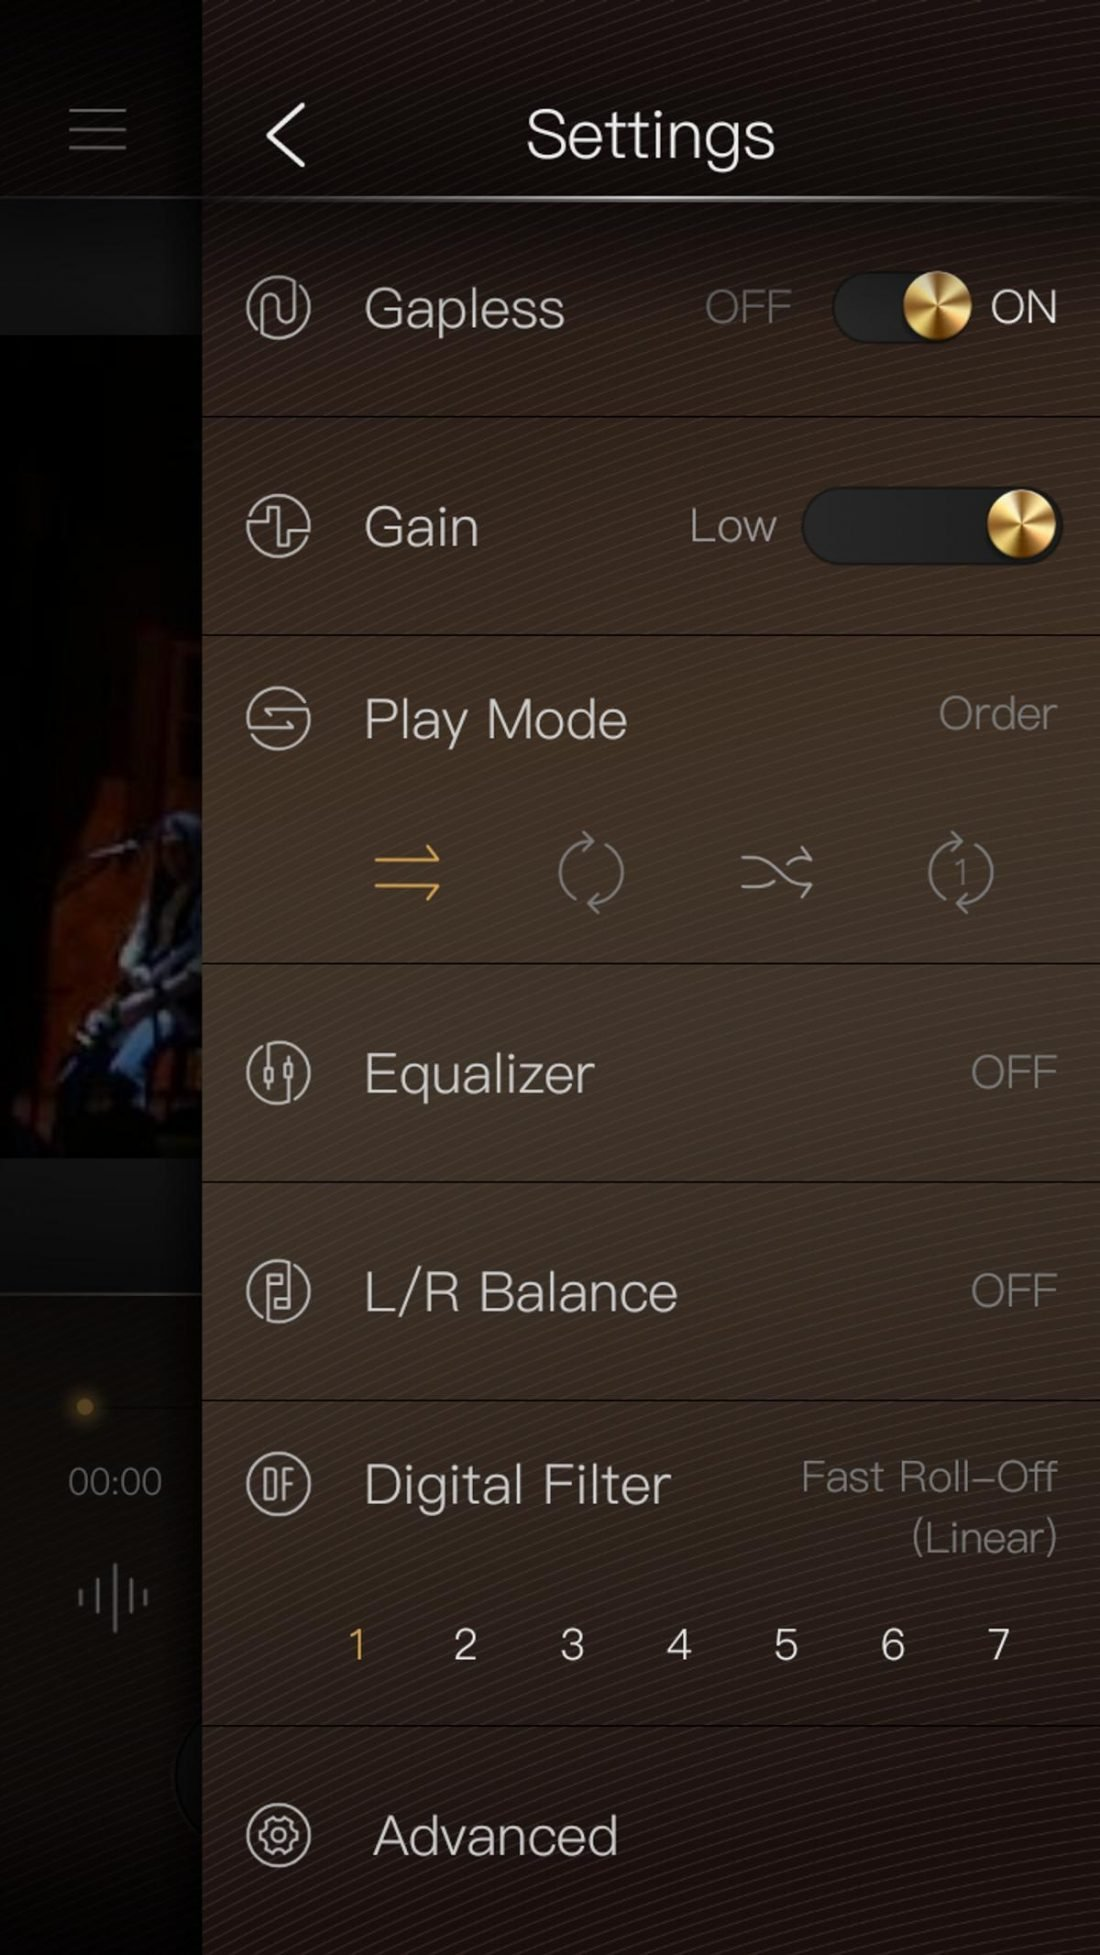 Various settings are available in the Mango Player